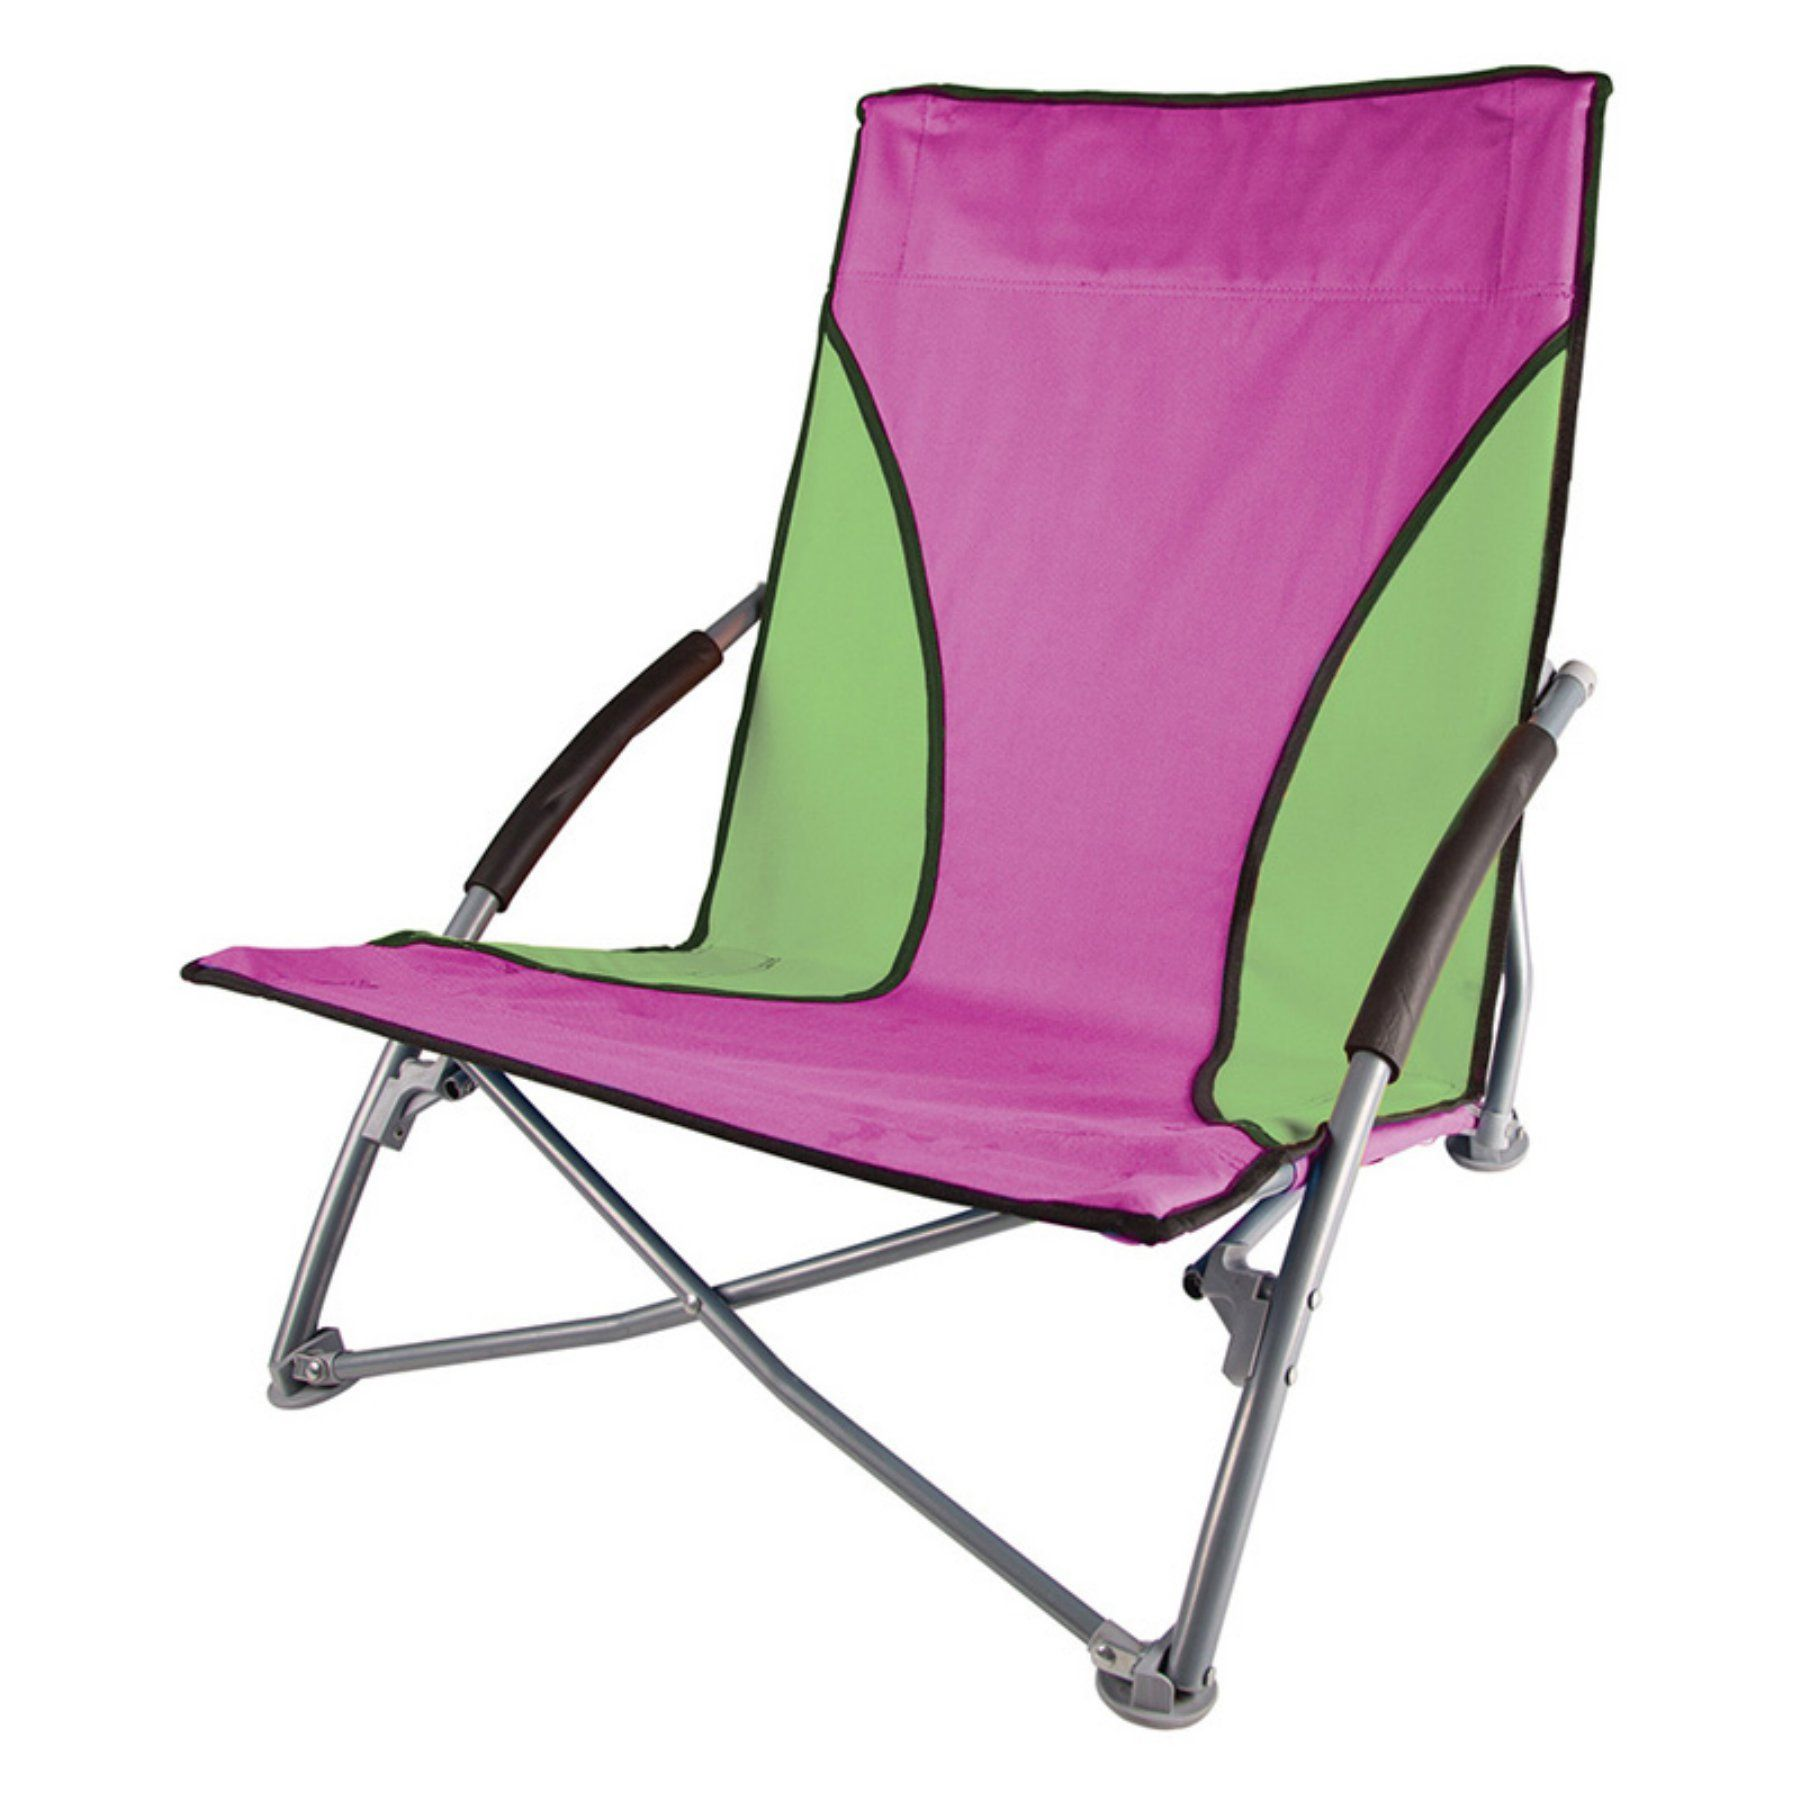 Outdoor Stansport Low Profile Sand Chair G1150 Fold